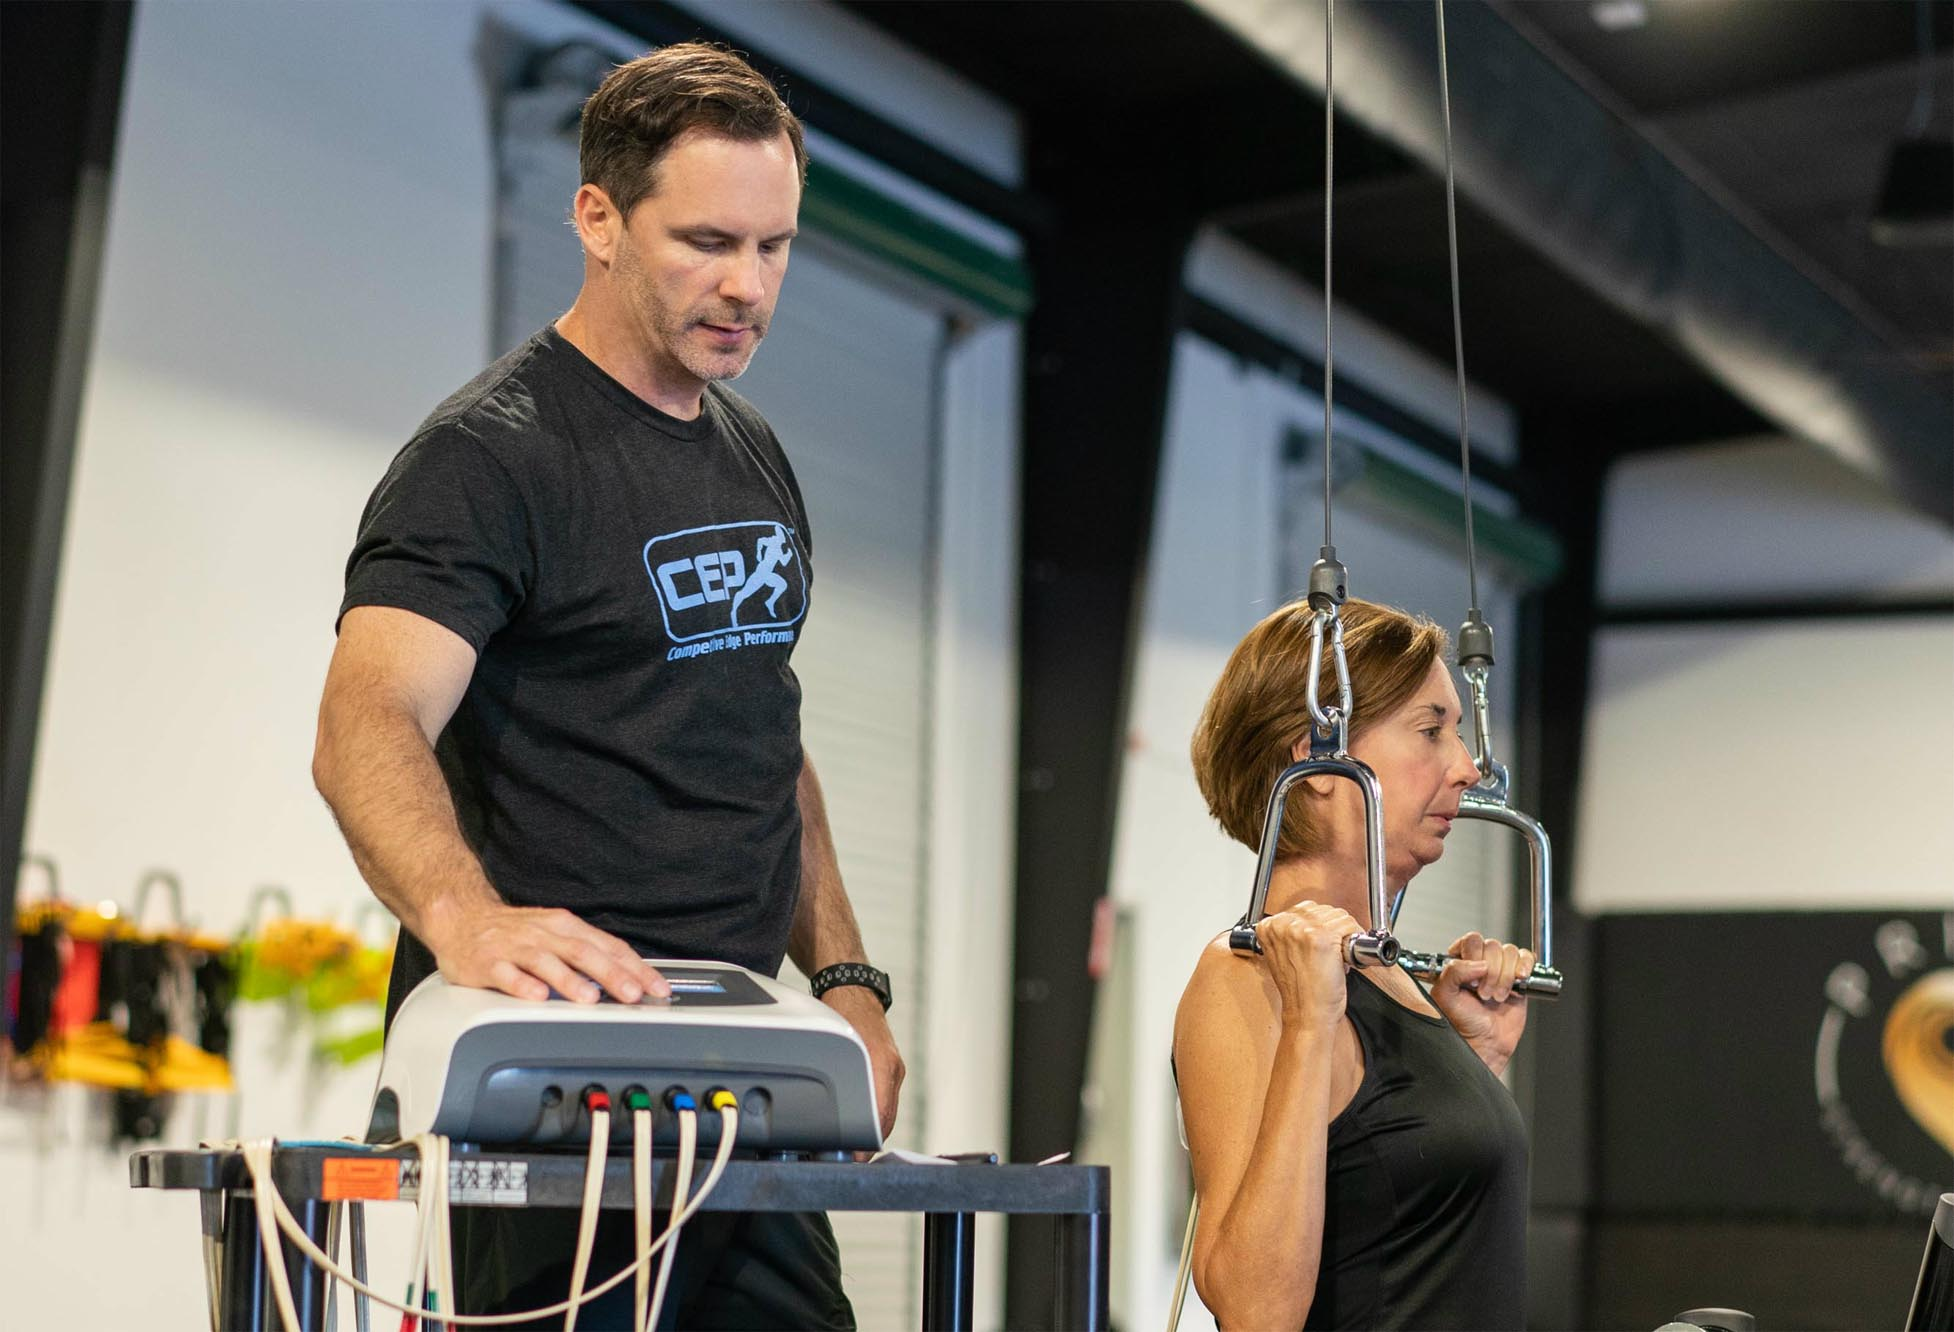 A Groundbreaking Device is Proving to be the Next Generation of Neuro Biological Stimulation For Healing and Function